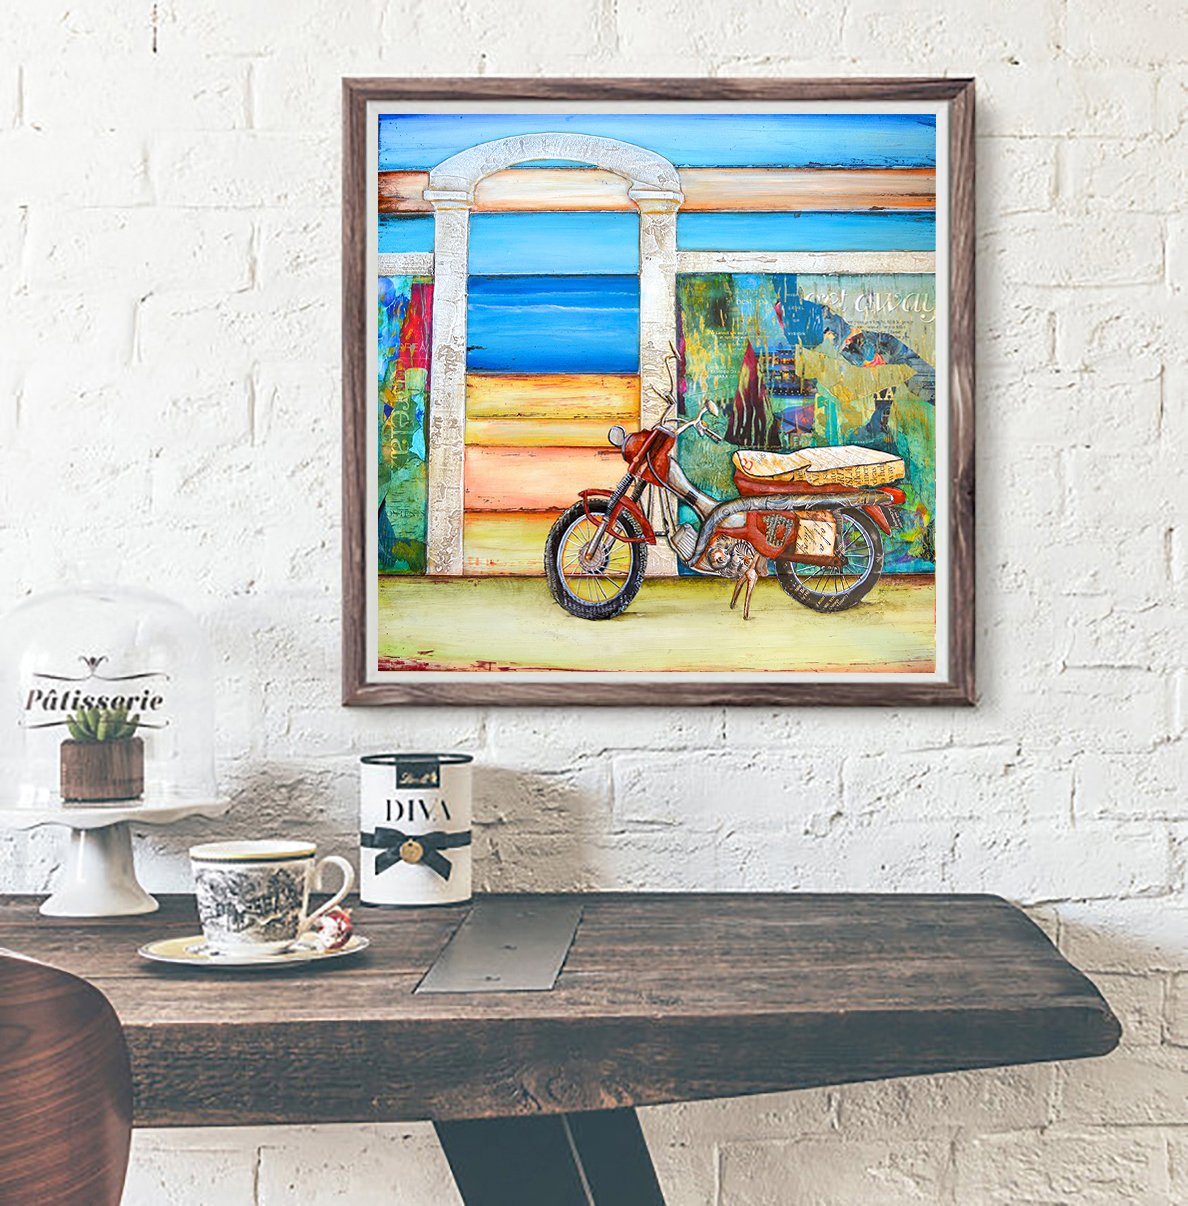 Pit Stop - Danny Phillips art print, UNFRAMED, motorcycle, beach, carribean Inspired funky retro vintage mixed media art wall & home decor poster, ALL SIZES	 1